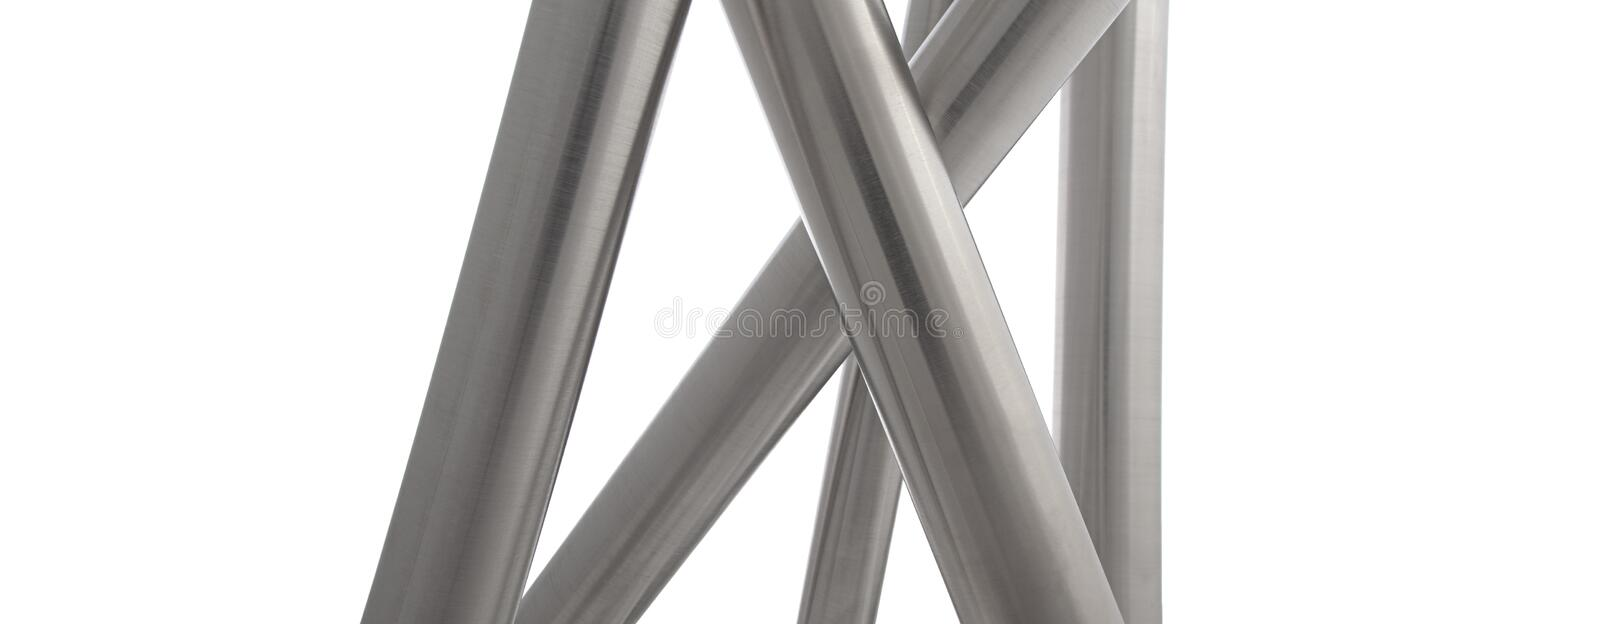 Download Stainless Steel Pipes Vertical Isolated Stock Photo - Image: 20574326